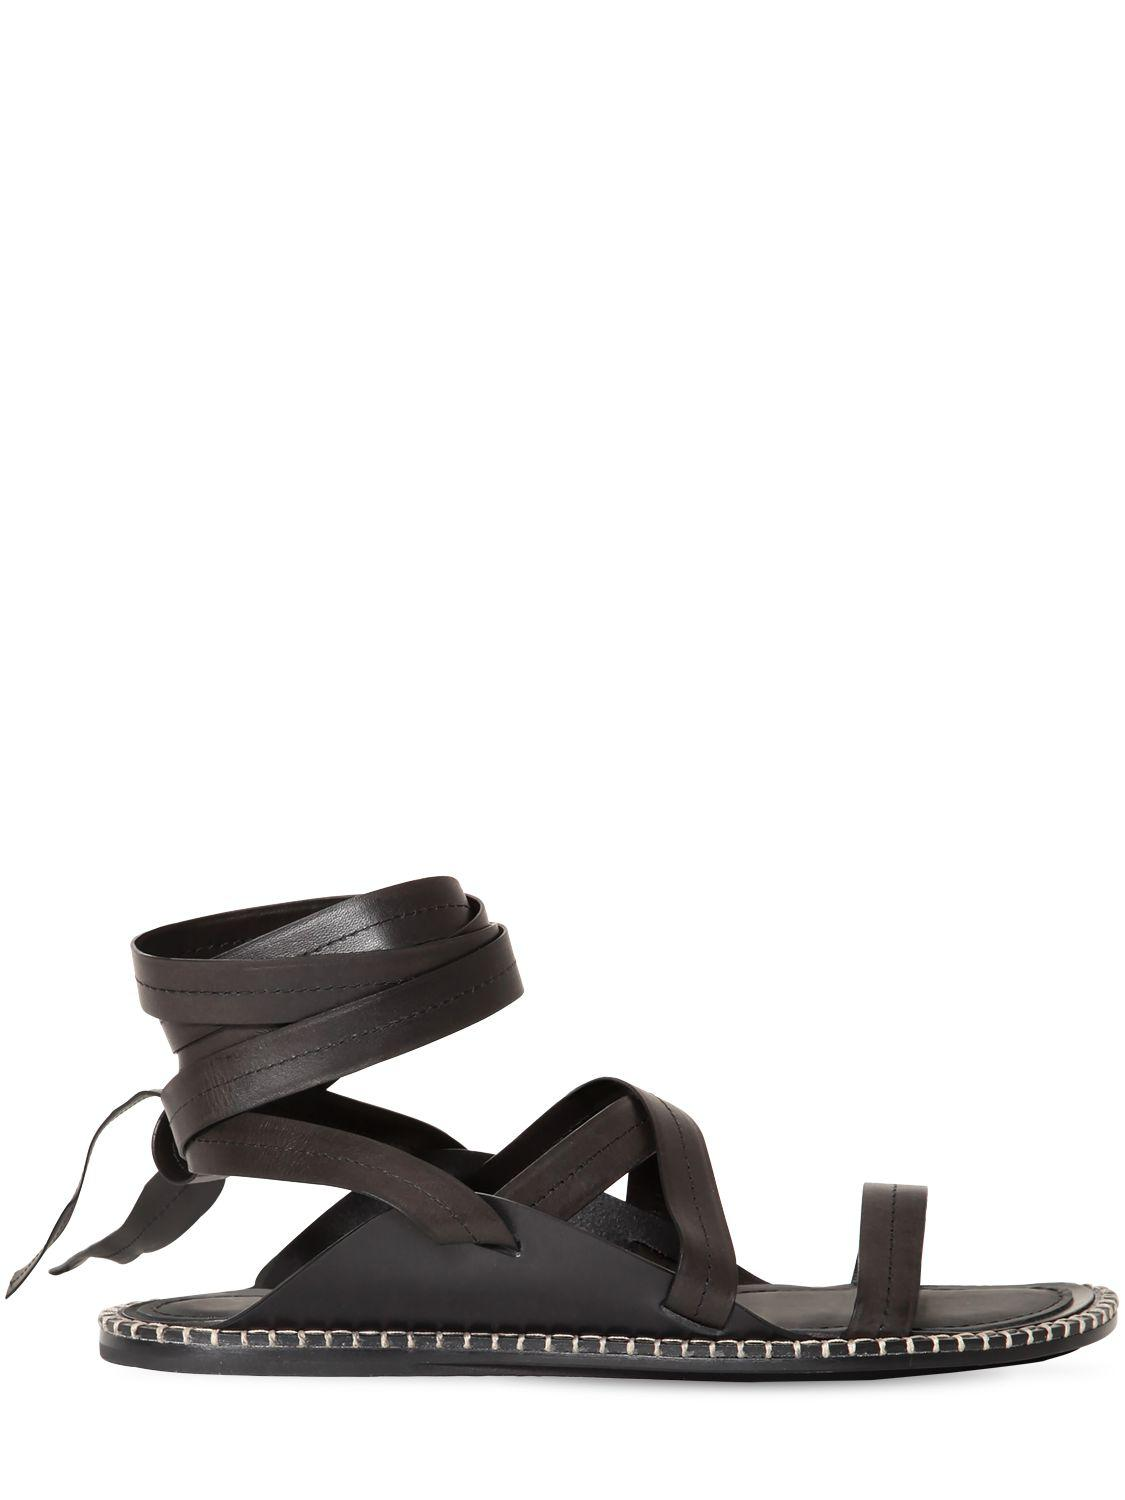 Ann Demeulemeester Leather Strap Sandals In Black White